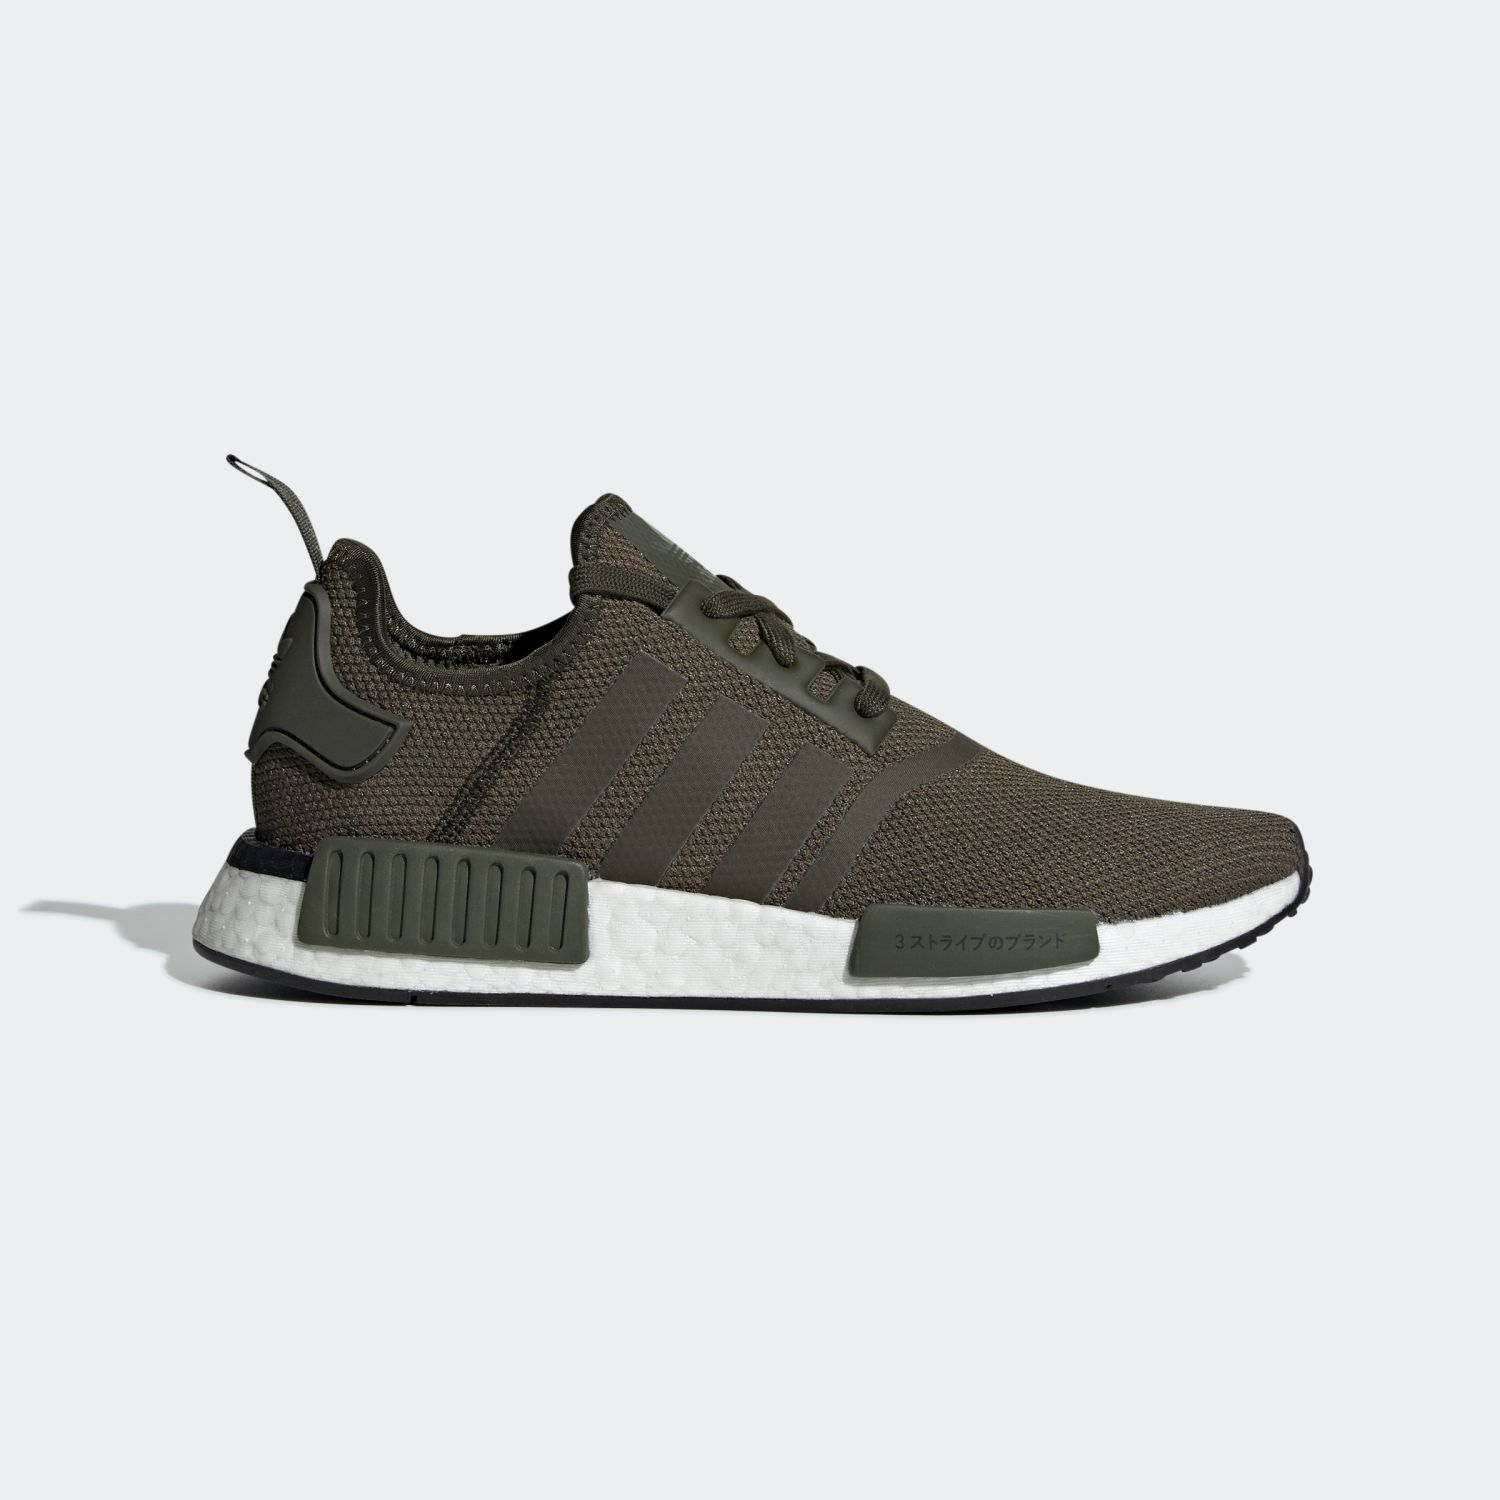 NMD R1 Japan Night Cargo (2019)